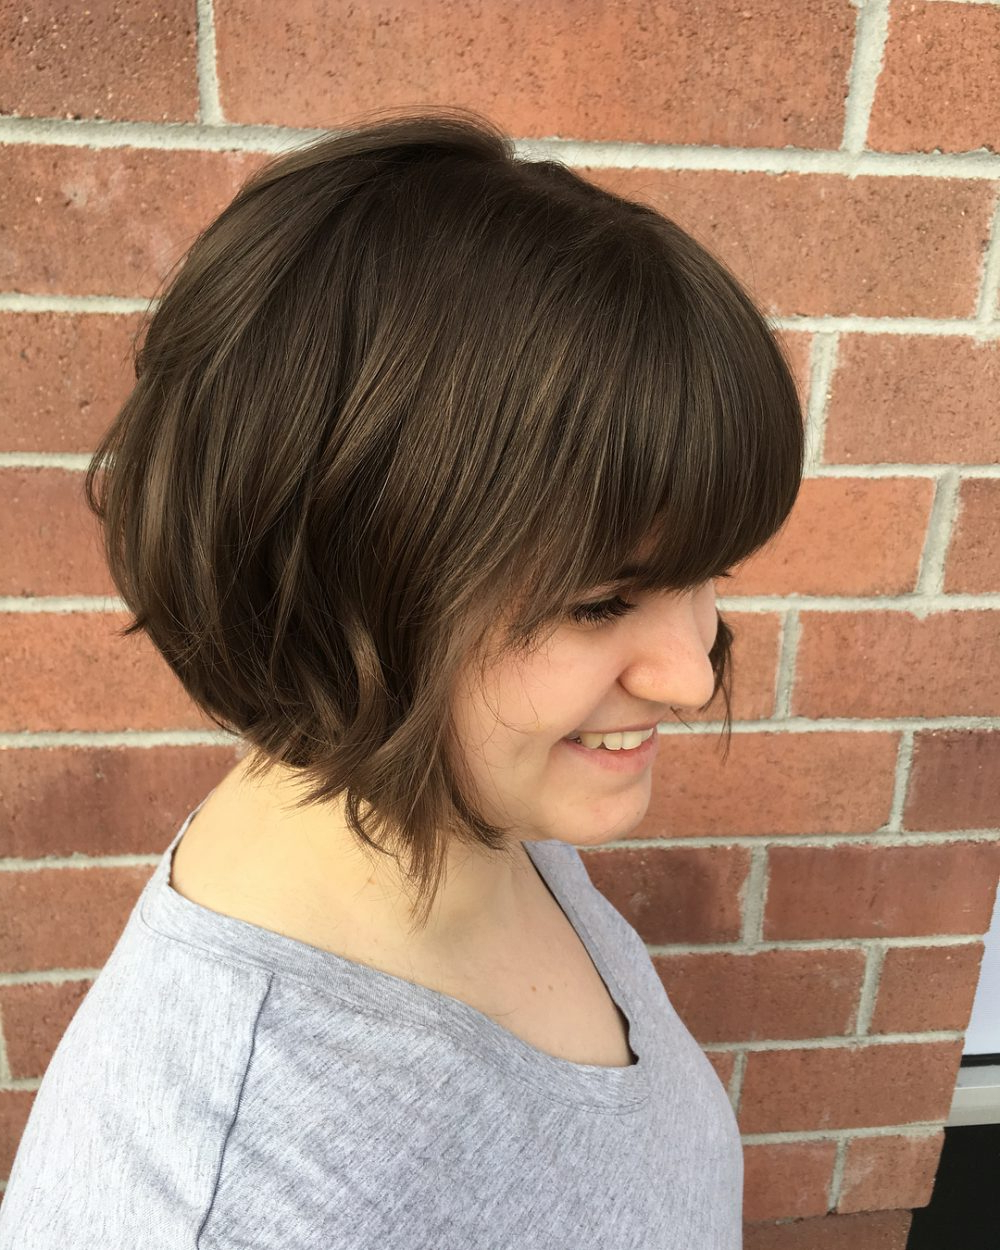 34 Greatest Short Haircuts And Hairstyles For Thick Hair For 2018 With Regard To Short Haircuts Bobs Thick Hair (View 4 of 25)